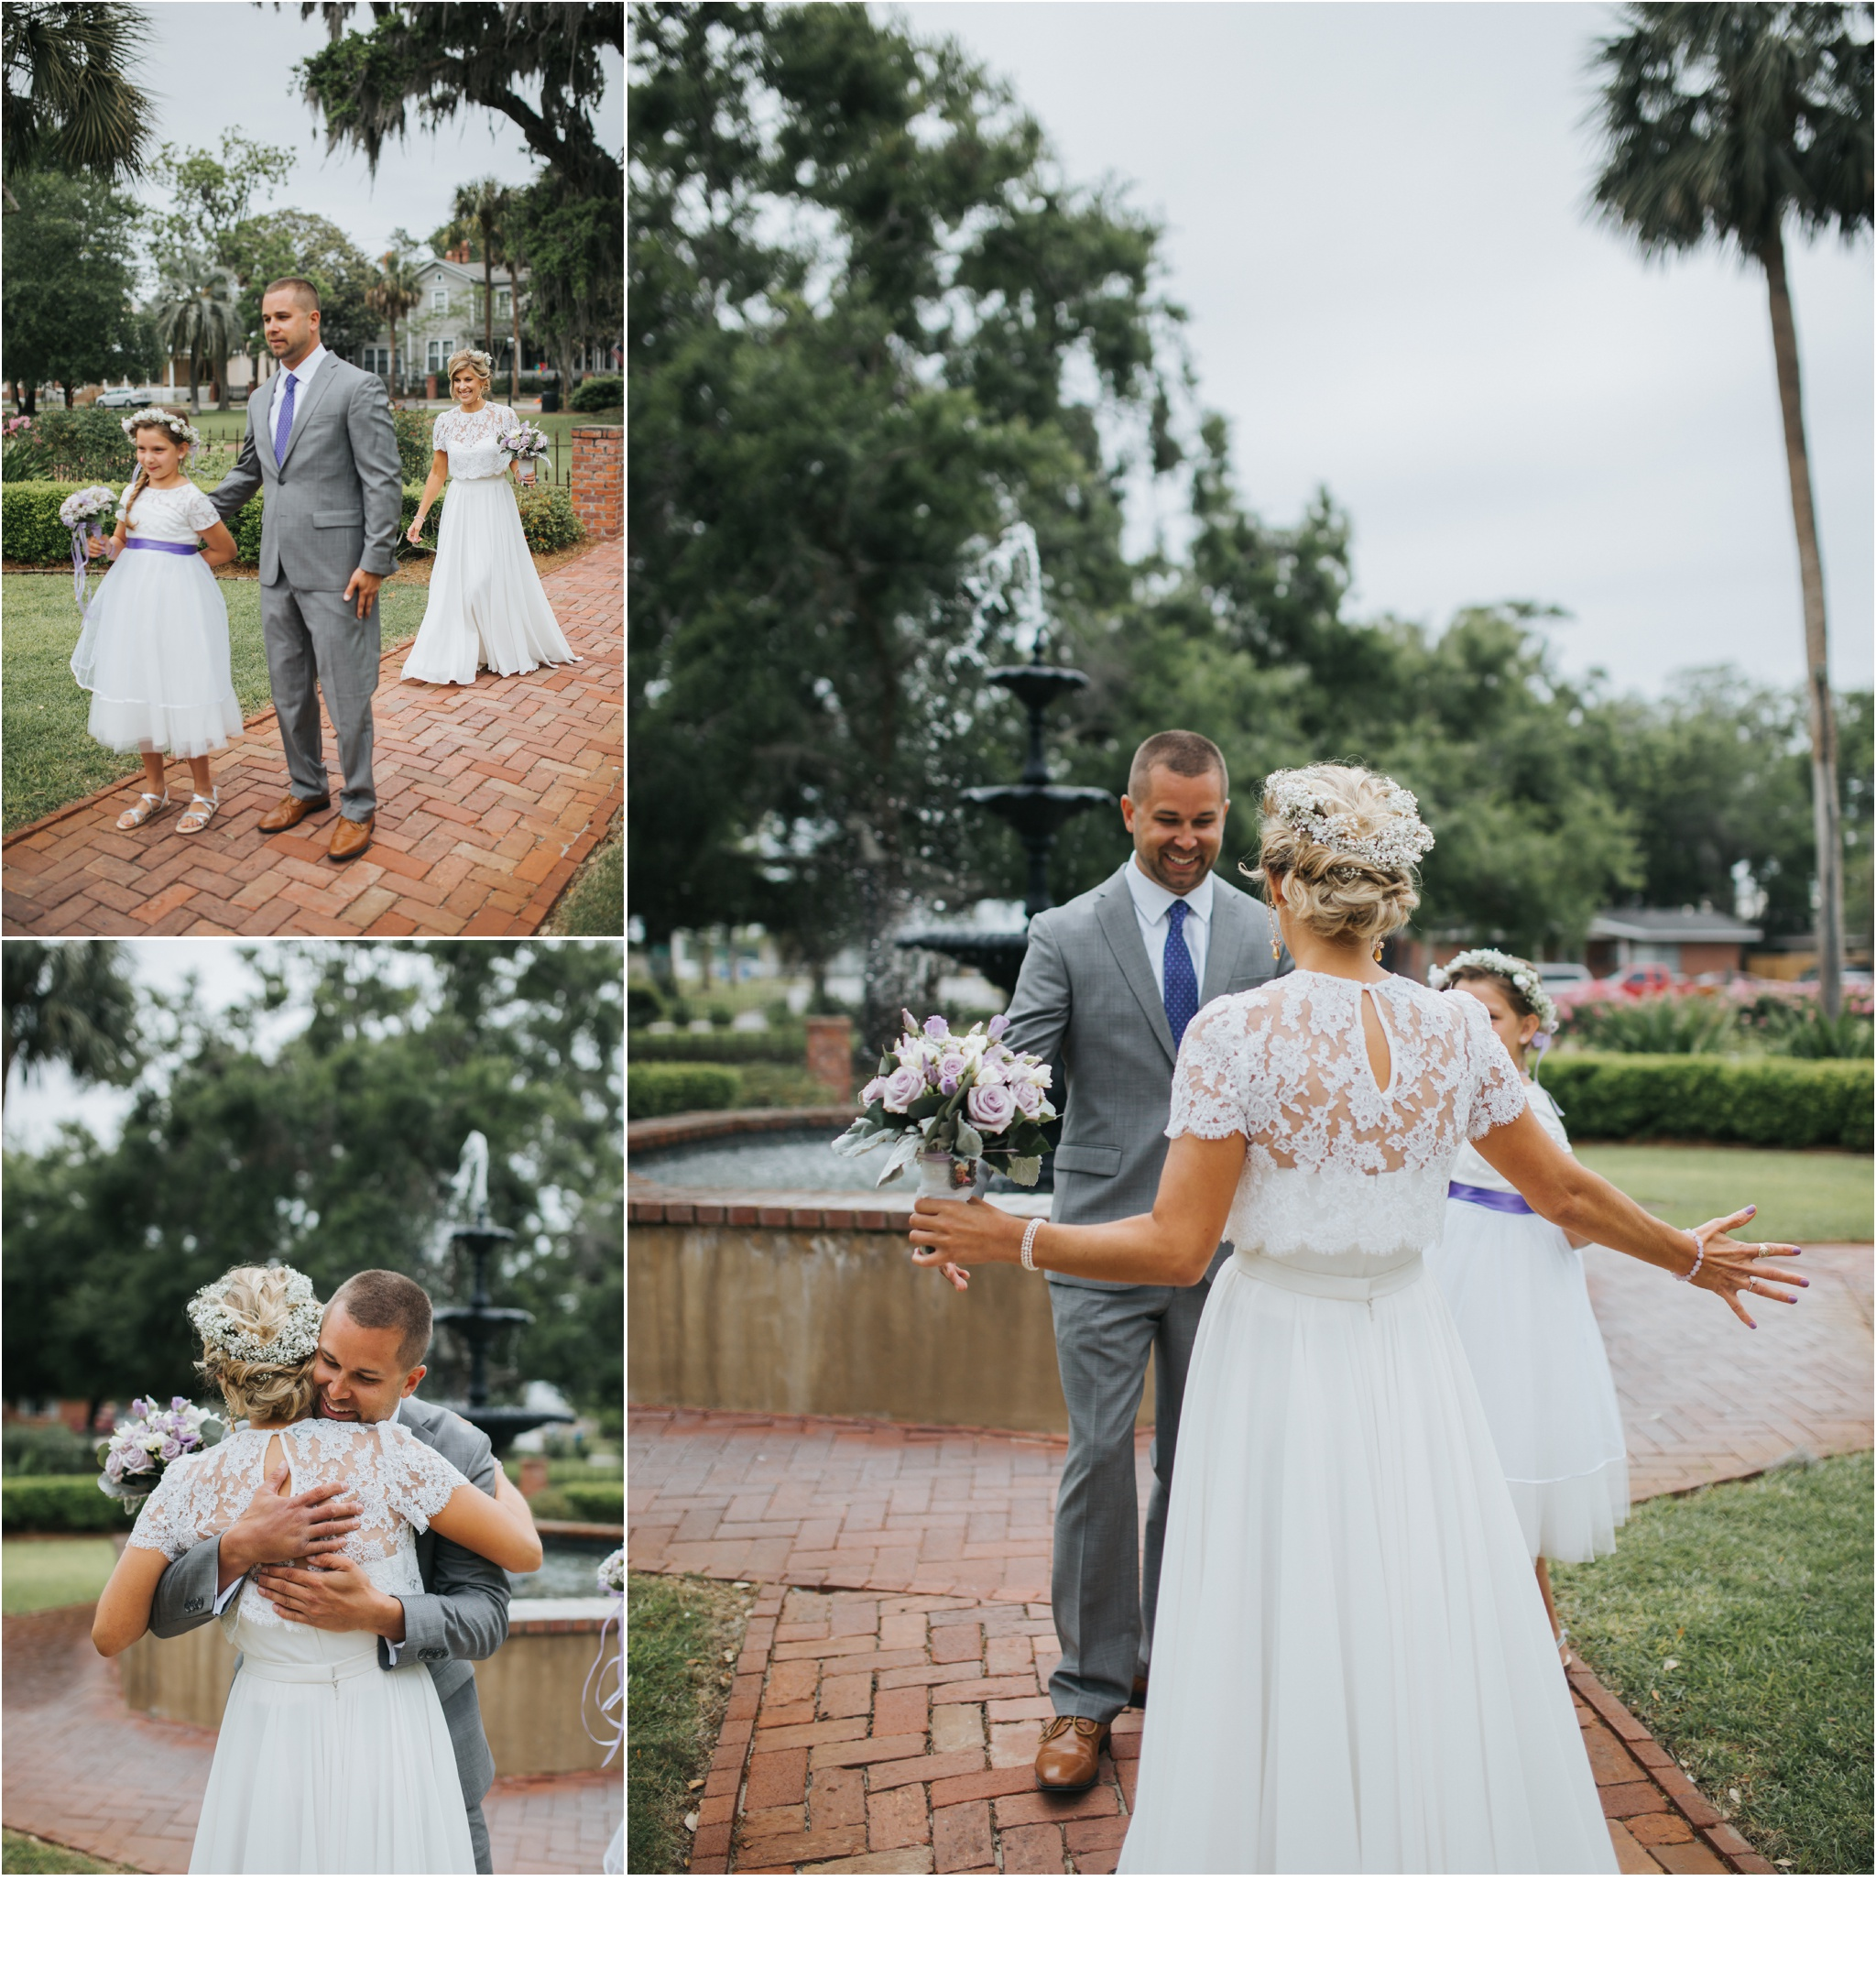 Rainey_Gregg_Photography_St._Simons_Island_Georgia_California_Wedding_Portrait_Photography_1497.jpg